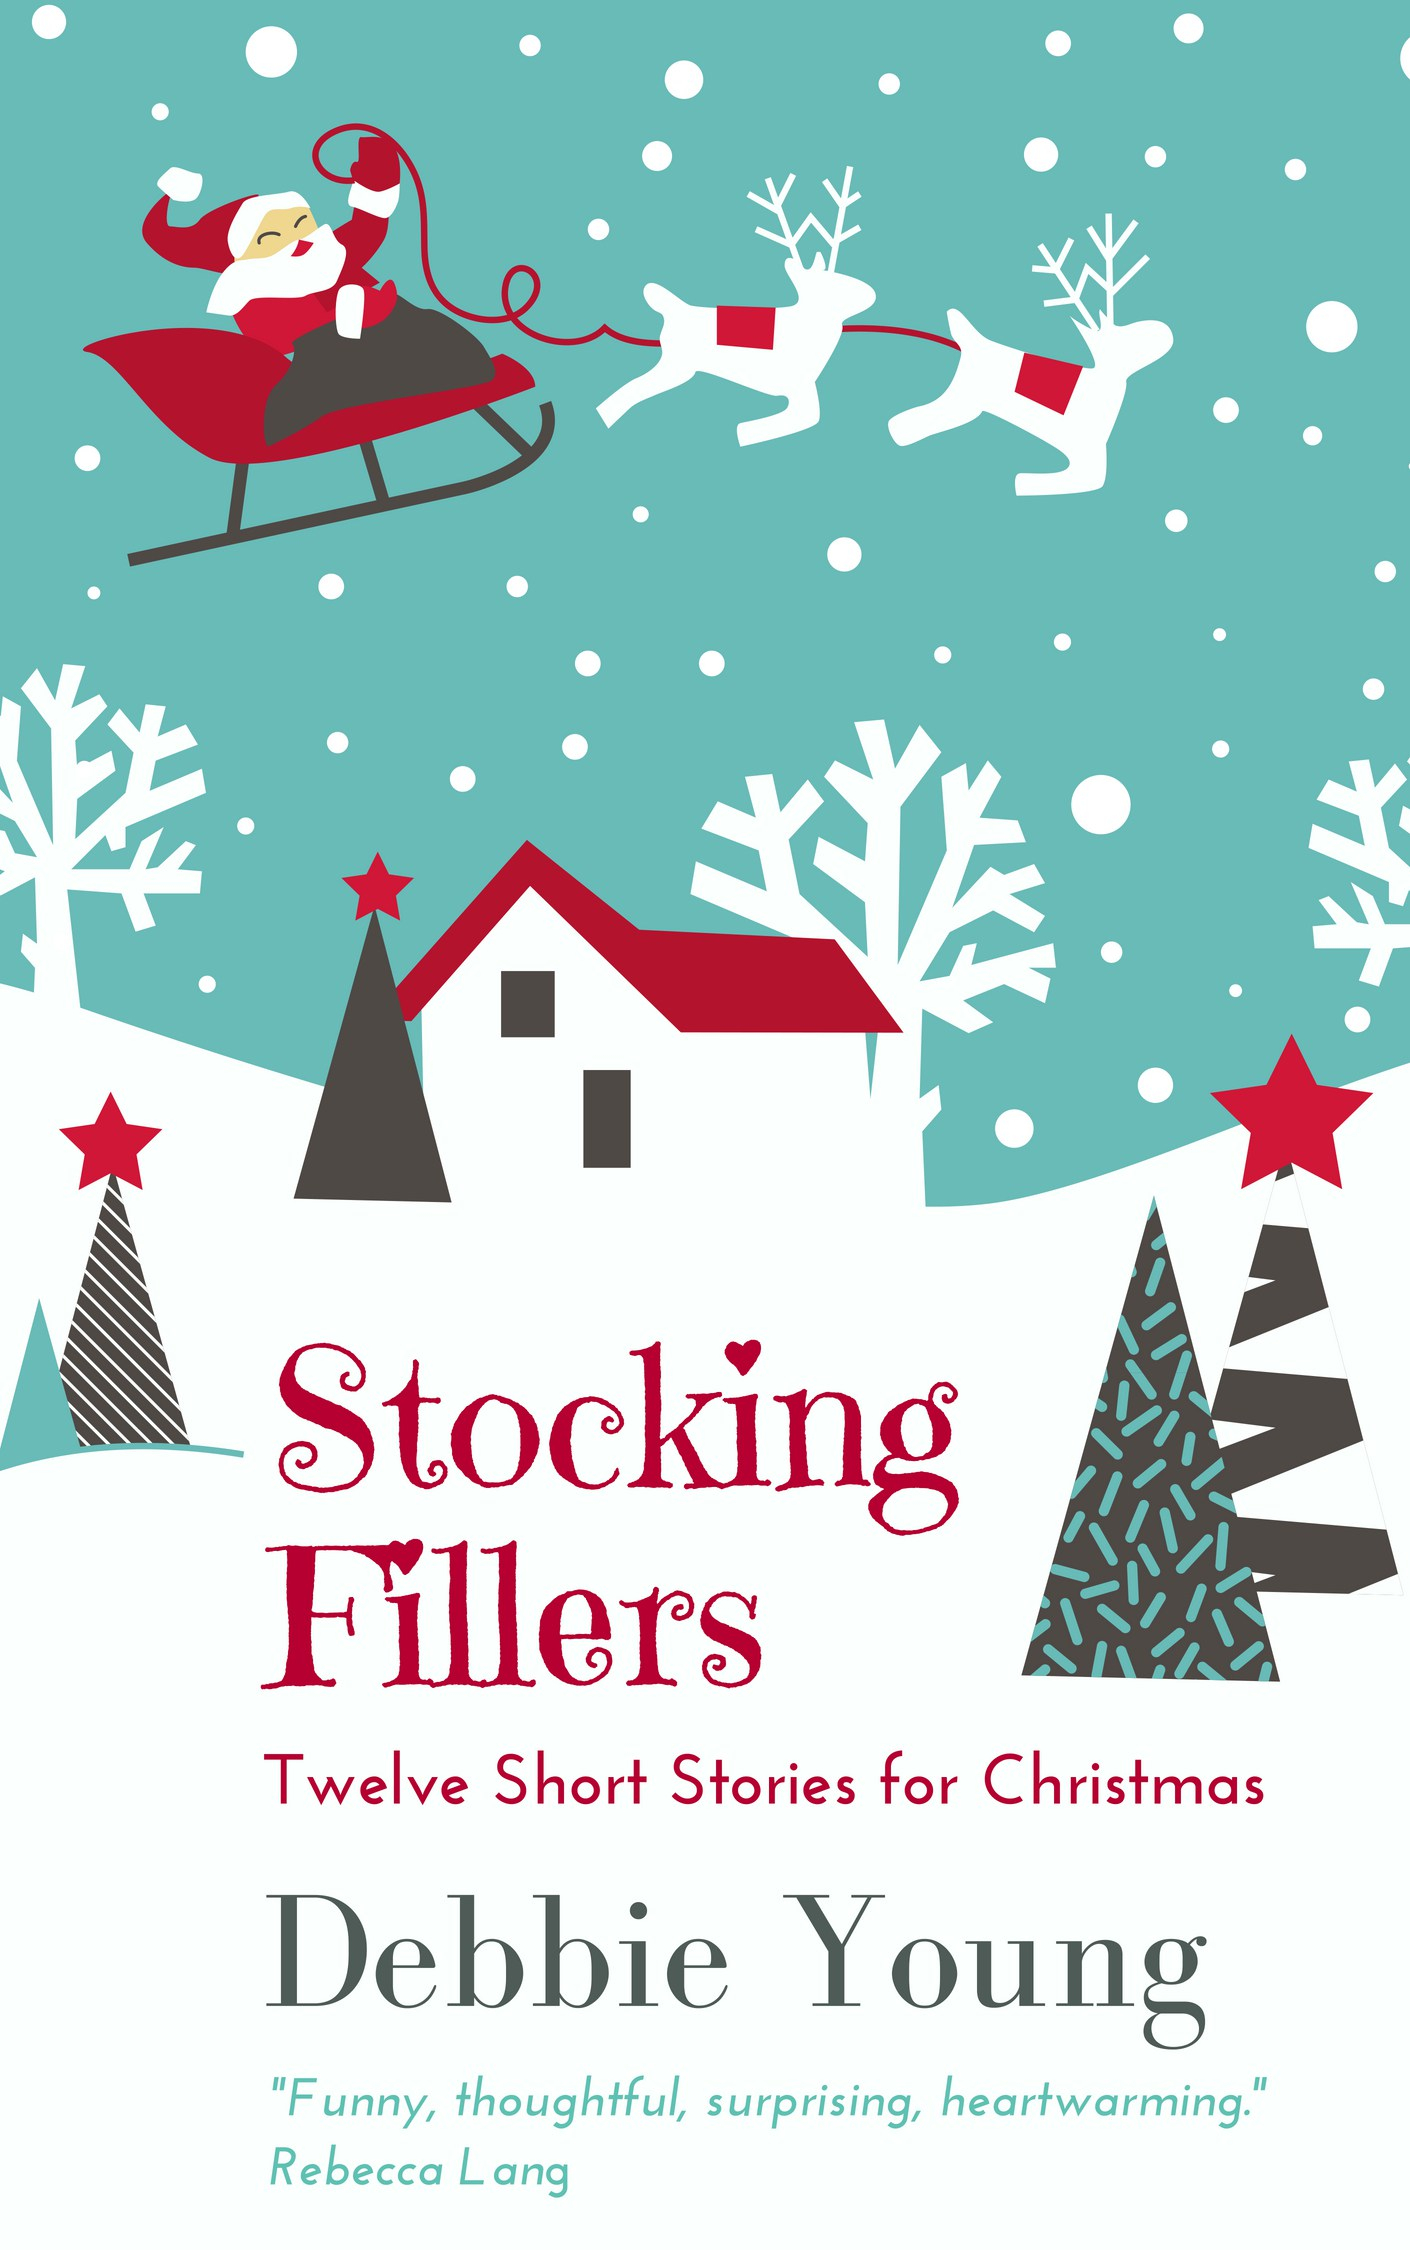 stocking fillers twelve short stories for christmas debbie young